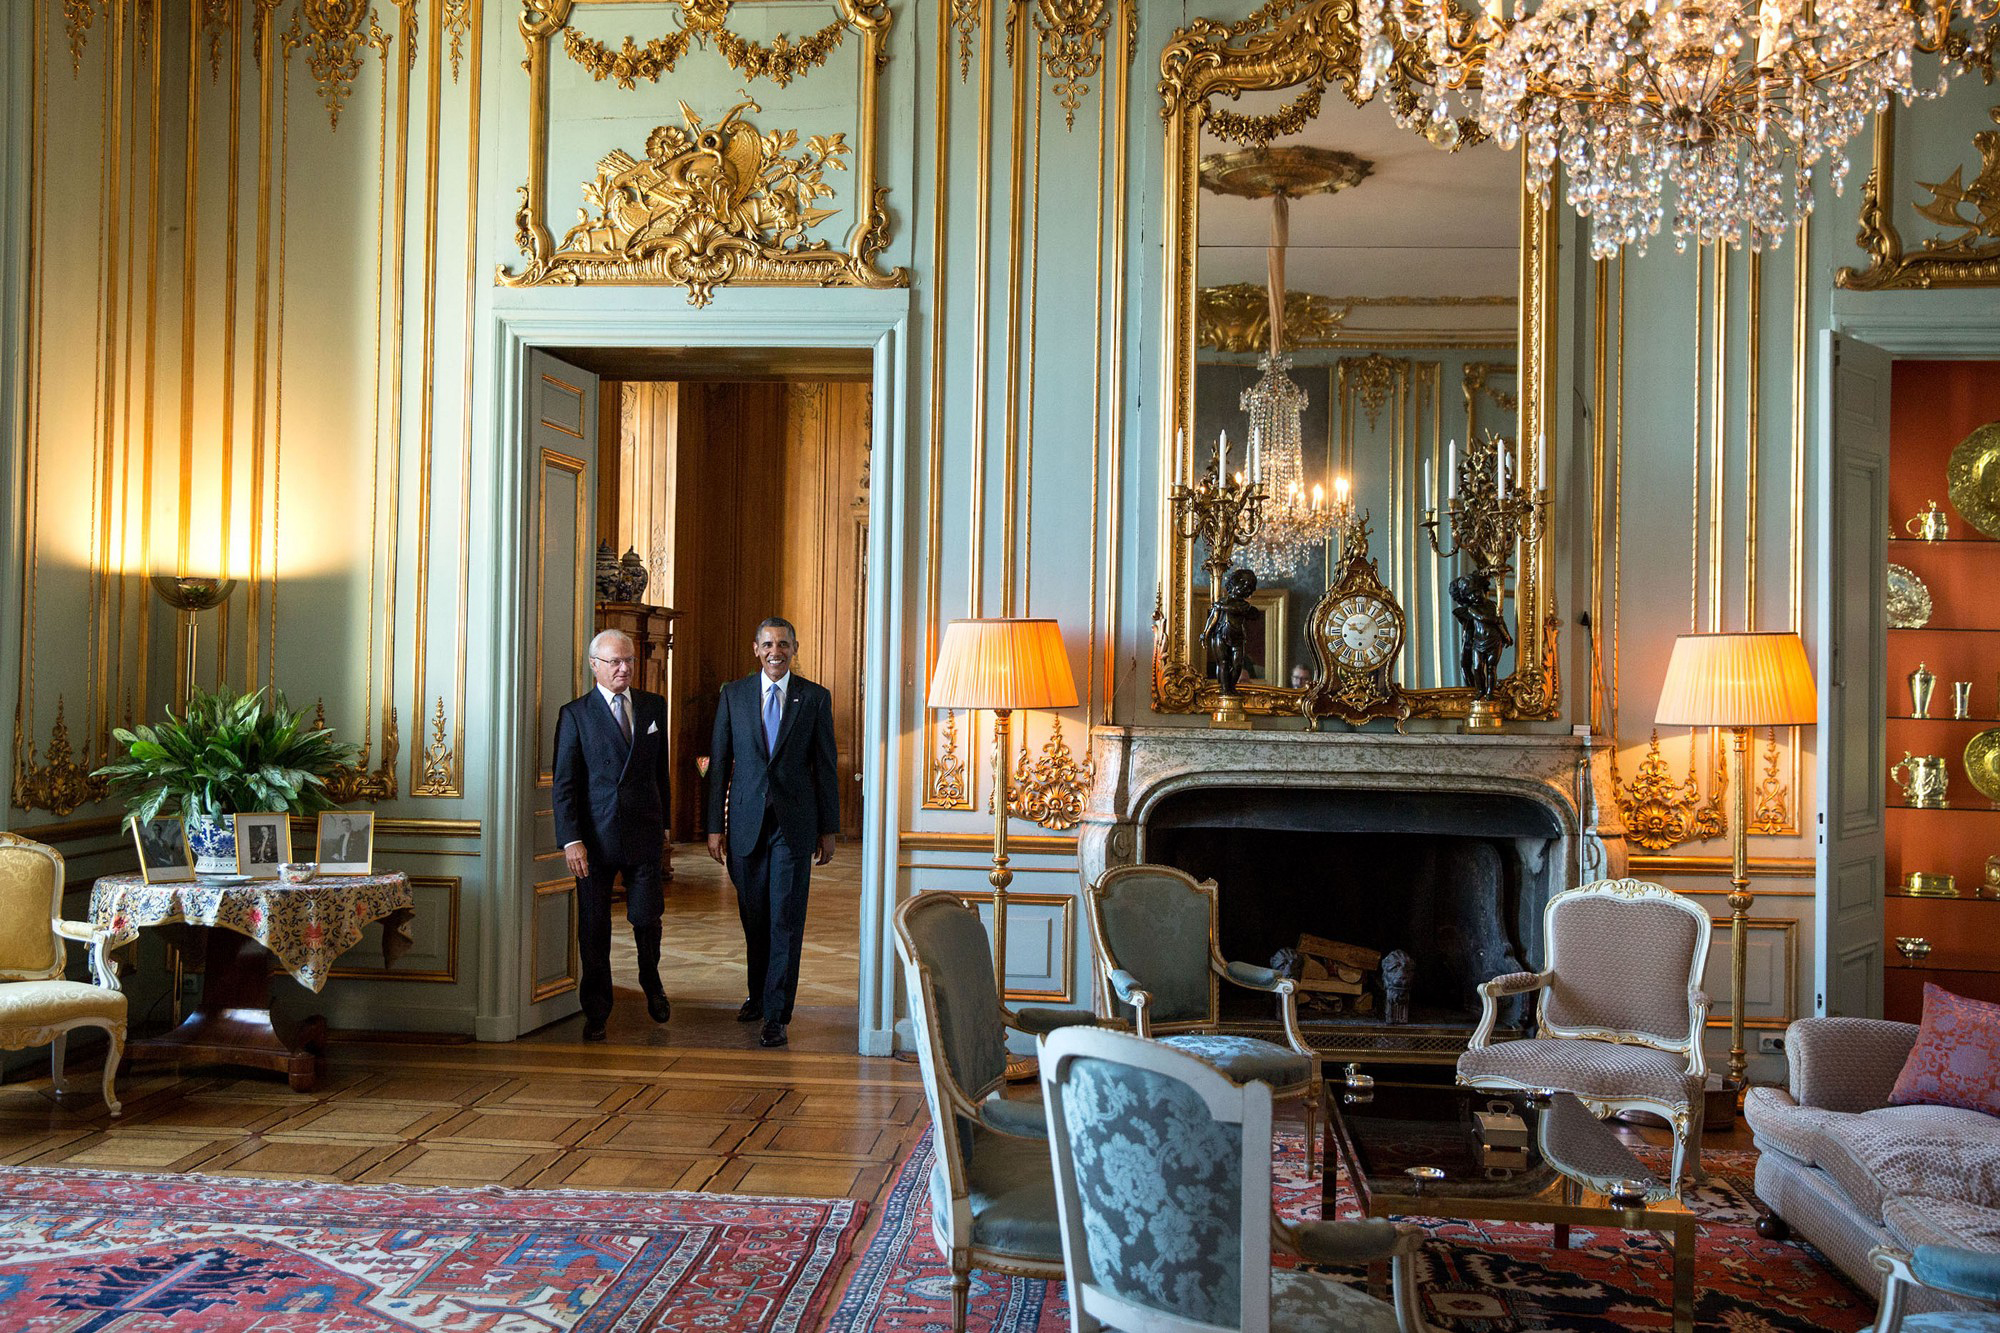 Filevisiting the royal palace with king carl xvi gustaf in stockholm sweden september 5 2013 jpg